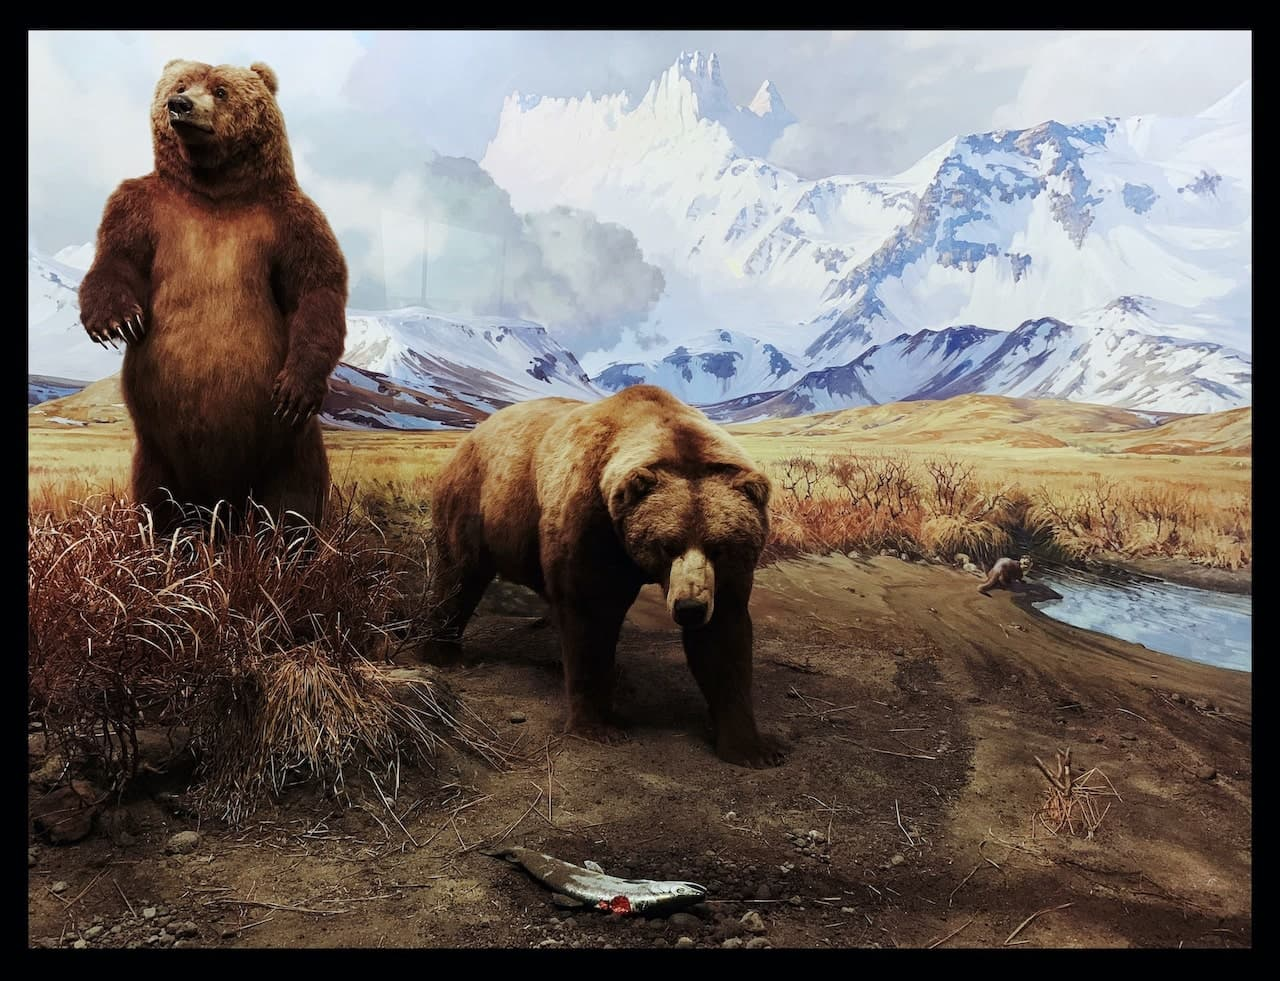 image of bears from a natural history museum exhibit